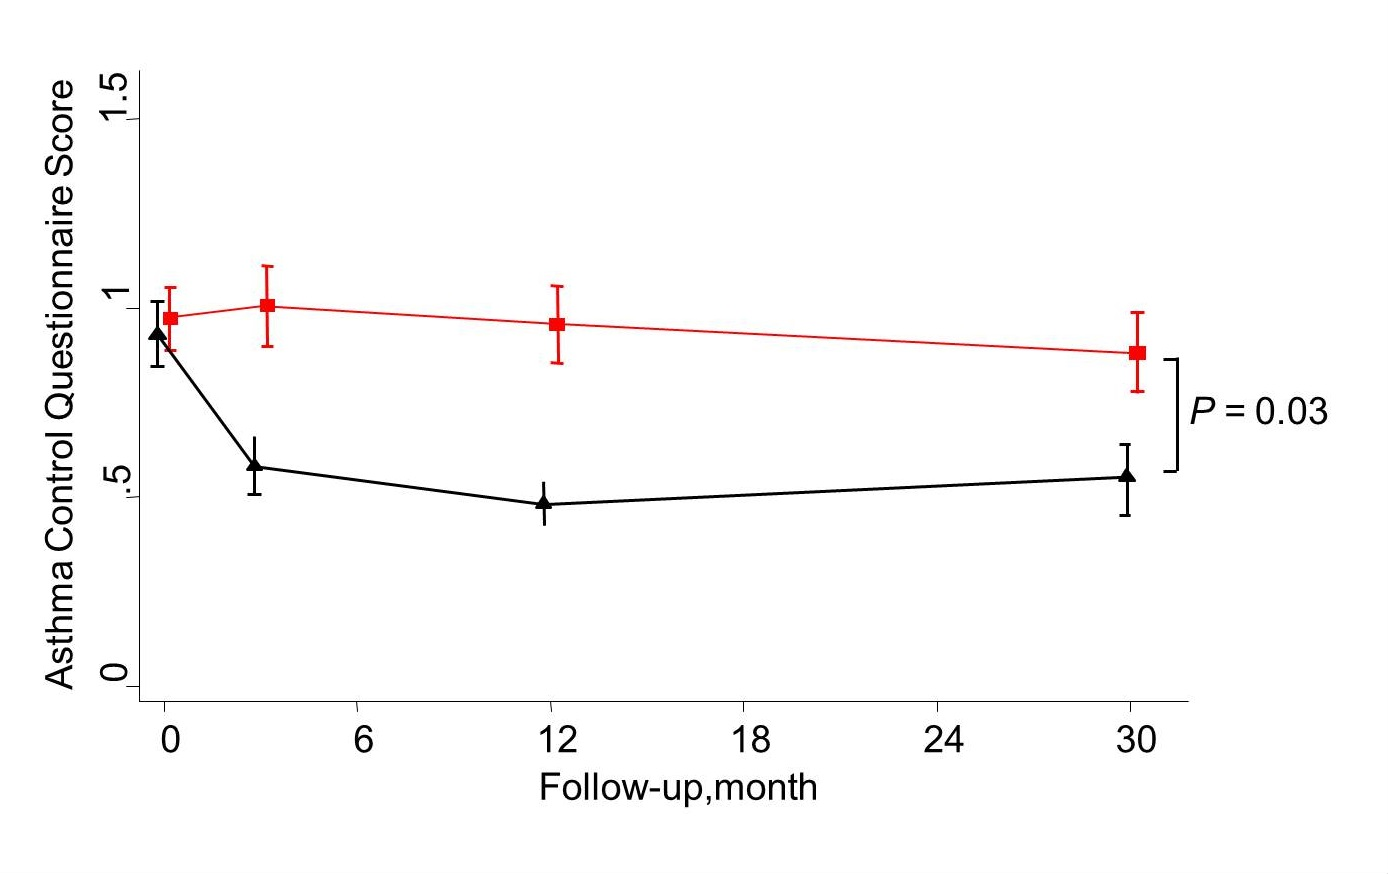 Jmir Long Term Outcomes Of Internet Based Self Management Support In Jacinto 6 Block Diagram View This Figure 5 Mean Asthma Control Questionnaire Score For The And Usual Care Group As Measured At 0 3 12 30 Months